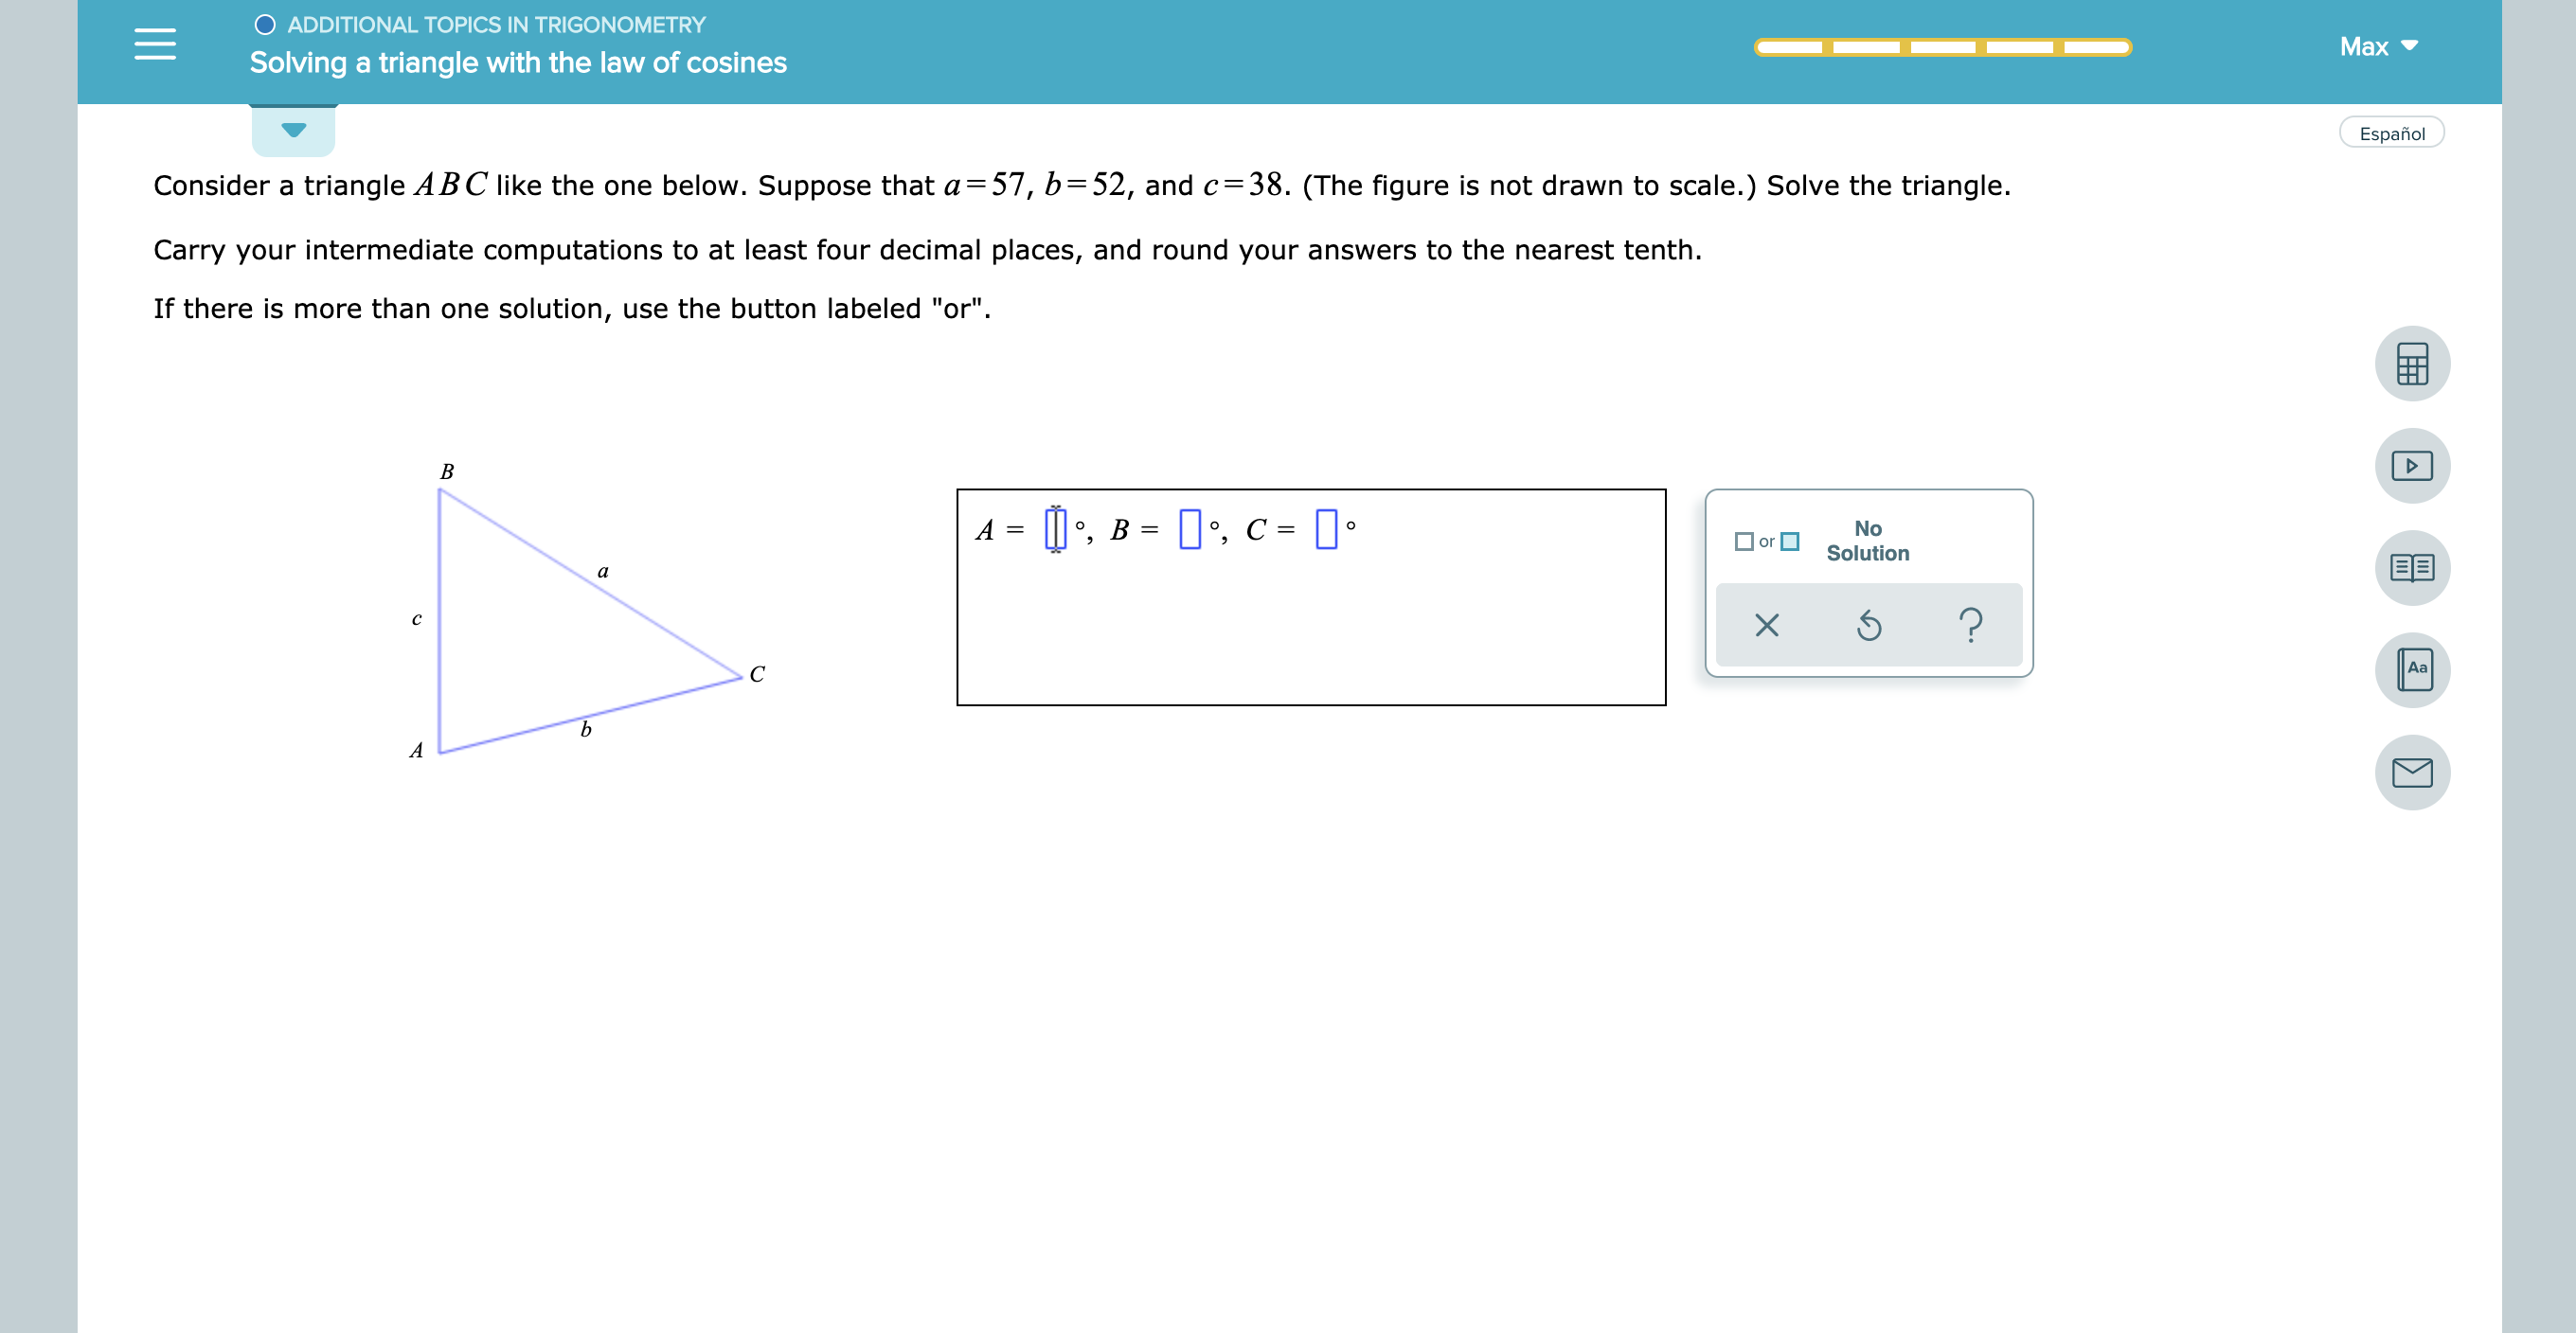 """O ADDITIONAL TOPICS IN TRIGONOMETRY Max Solving a triangle with the law of cosines Español triangle ABC like the one below. Suppose that a- 57, b=52, and c=38. (The figure is not drawn to scale.) Solve the triangle. Consider a Carry your intermediate computations to at least four decimal places, and round your answers to the nearest tenth If there is more than one solution, use the button labeled """"or"""" B ,B , C- No O or Solution BE а ? c Aa С"""